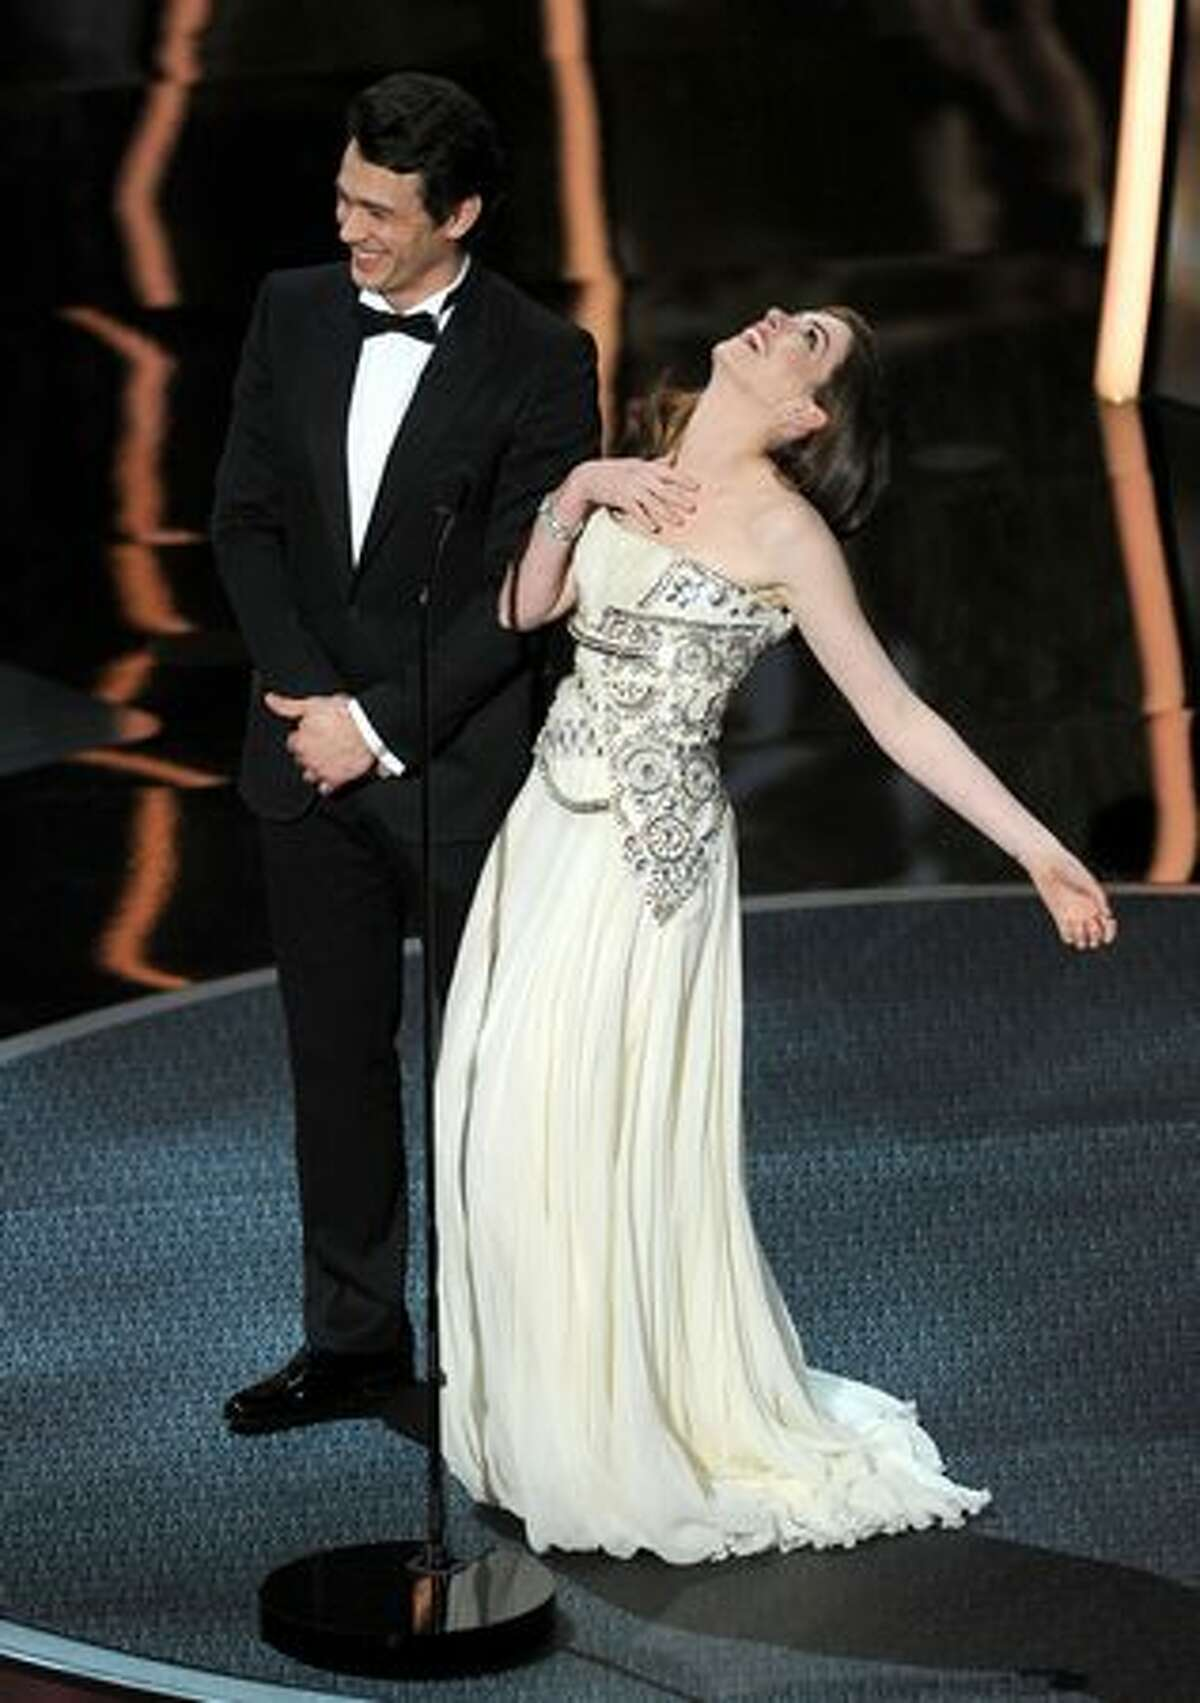 Hosts James Franco and Anne Hathaway speak onstage during the 83rd Annual Academy Awards held at the Kodak Theatre in Hollywood, California.